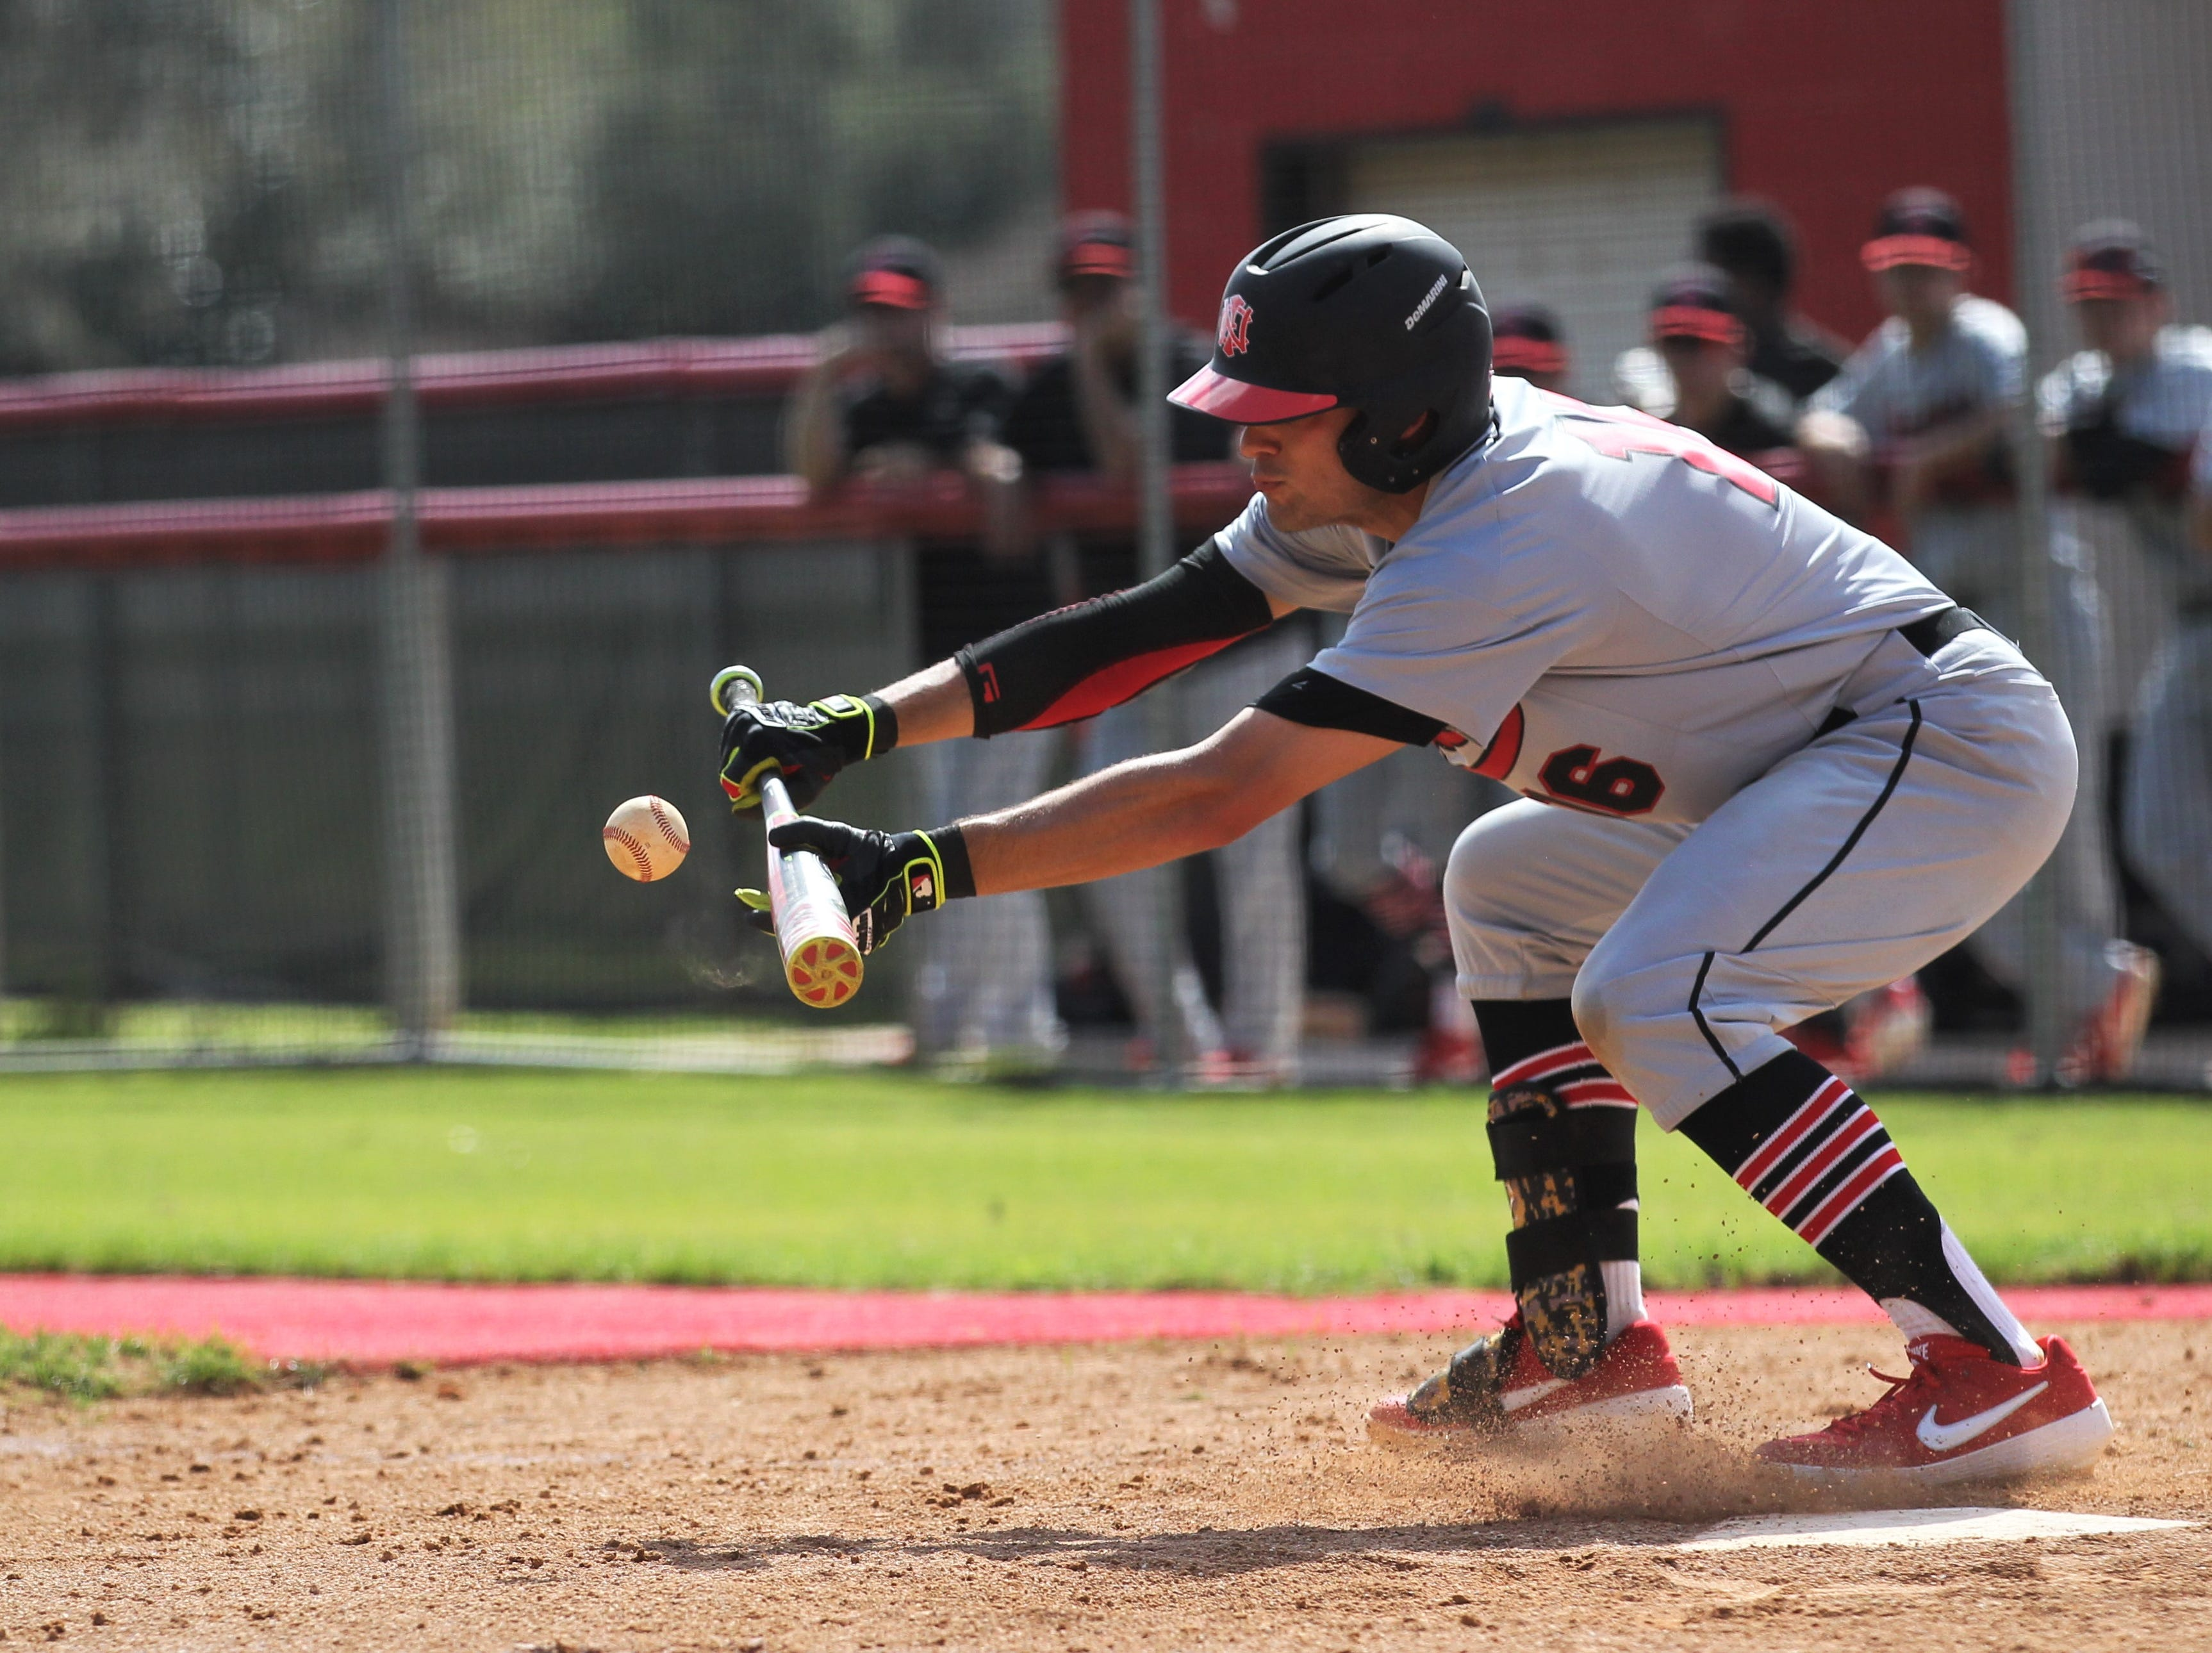 NFC senior Josiah Miller drops down to bunt during a preseason game at Leon. Miller, an FSU signee, transferred from Lincoln for his final high school season.